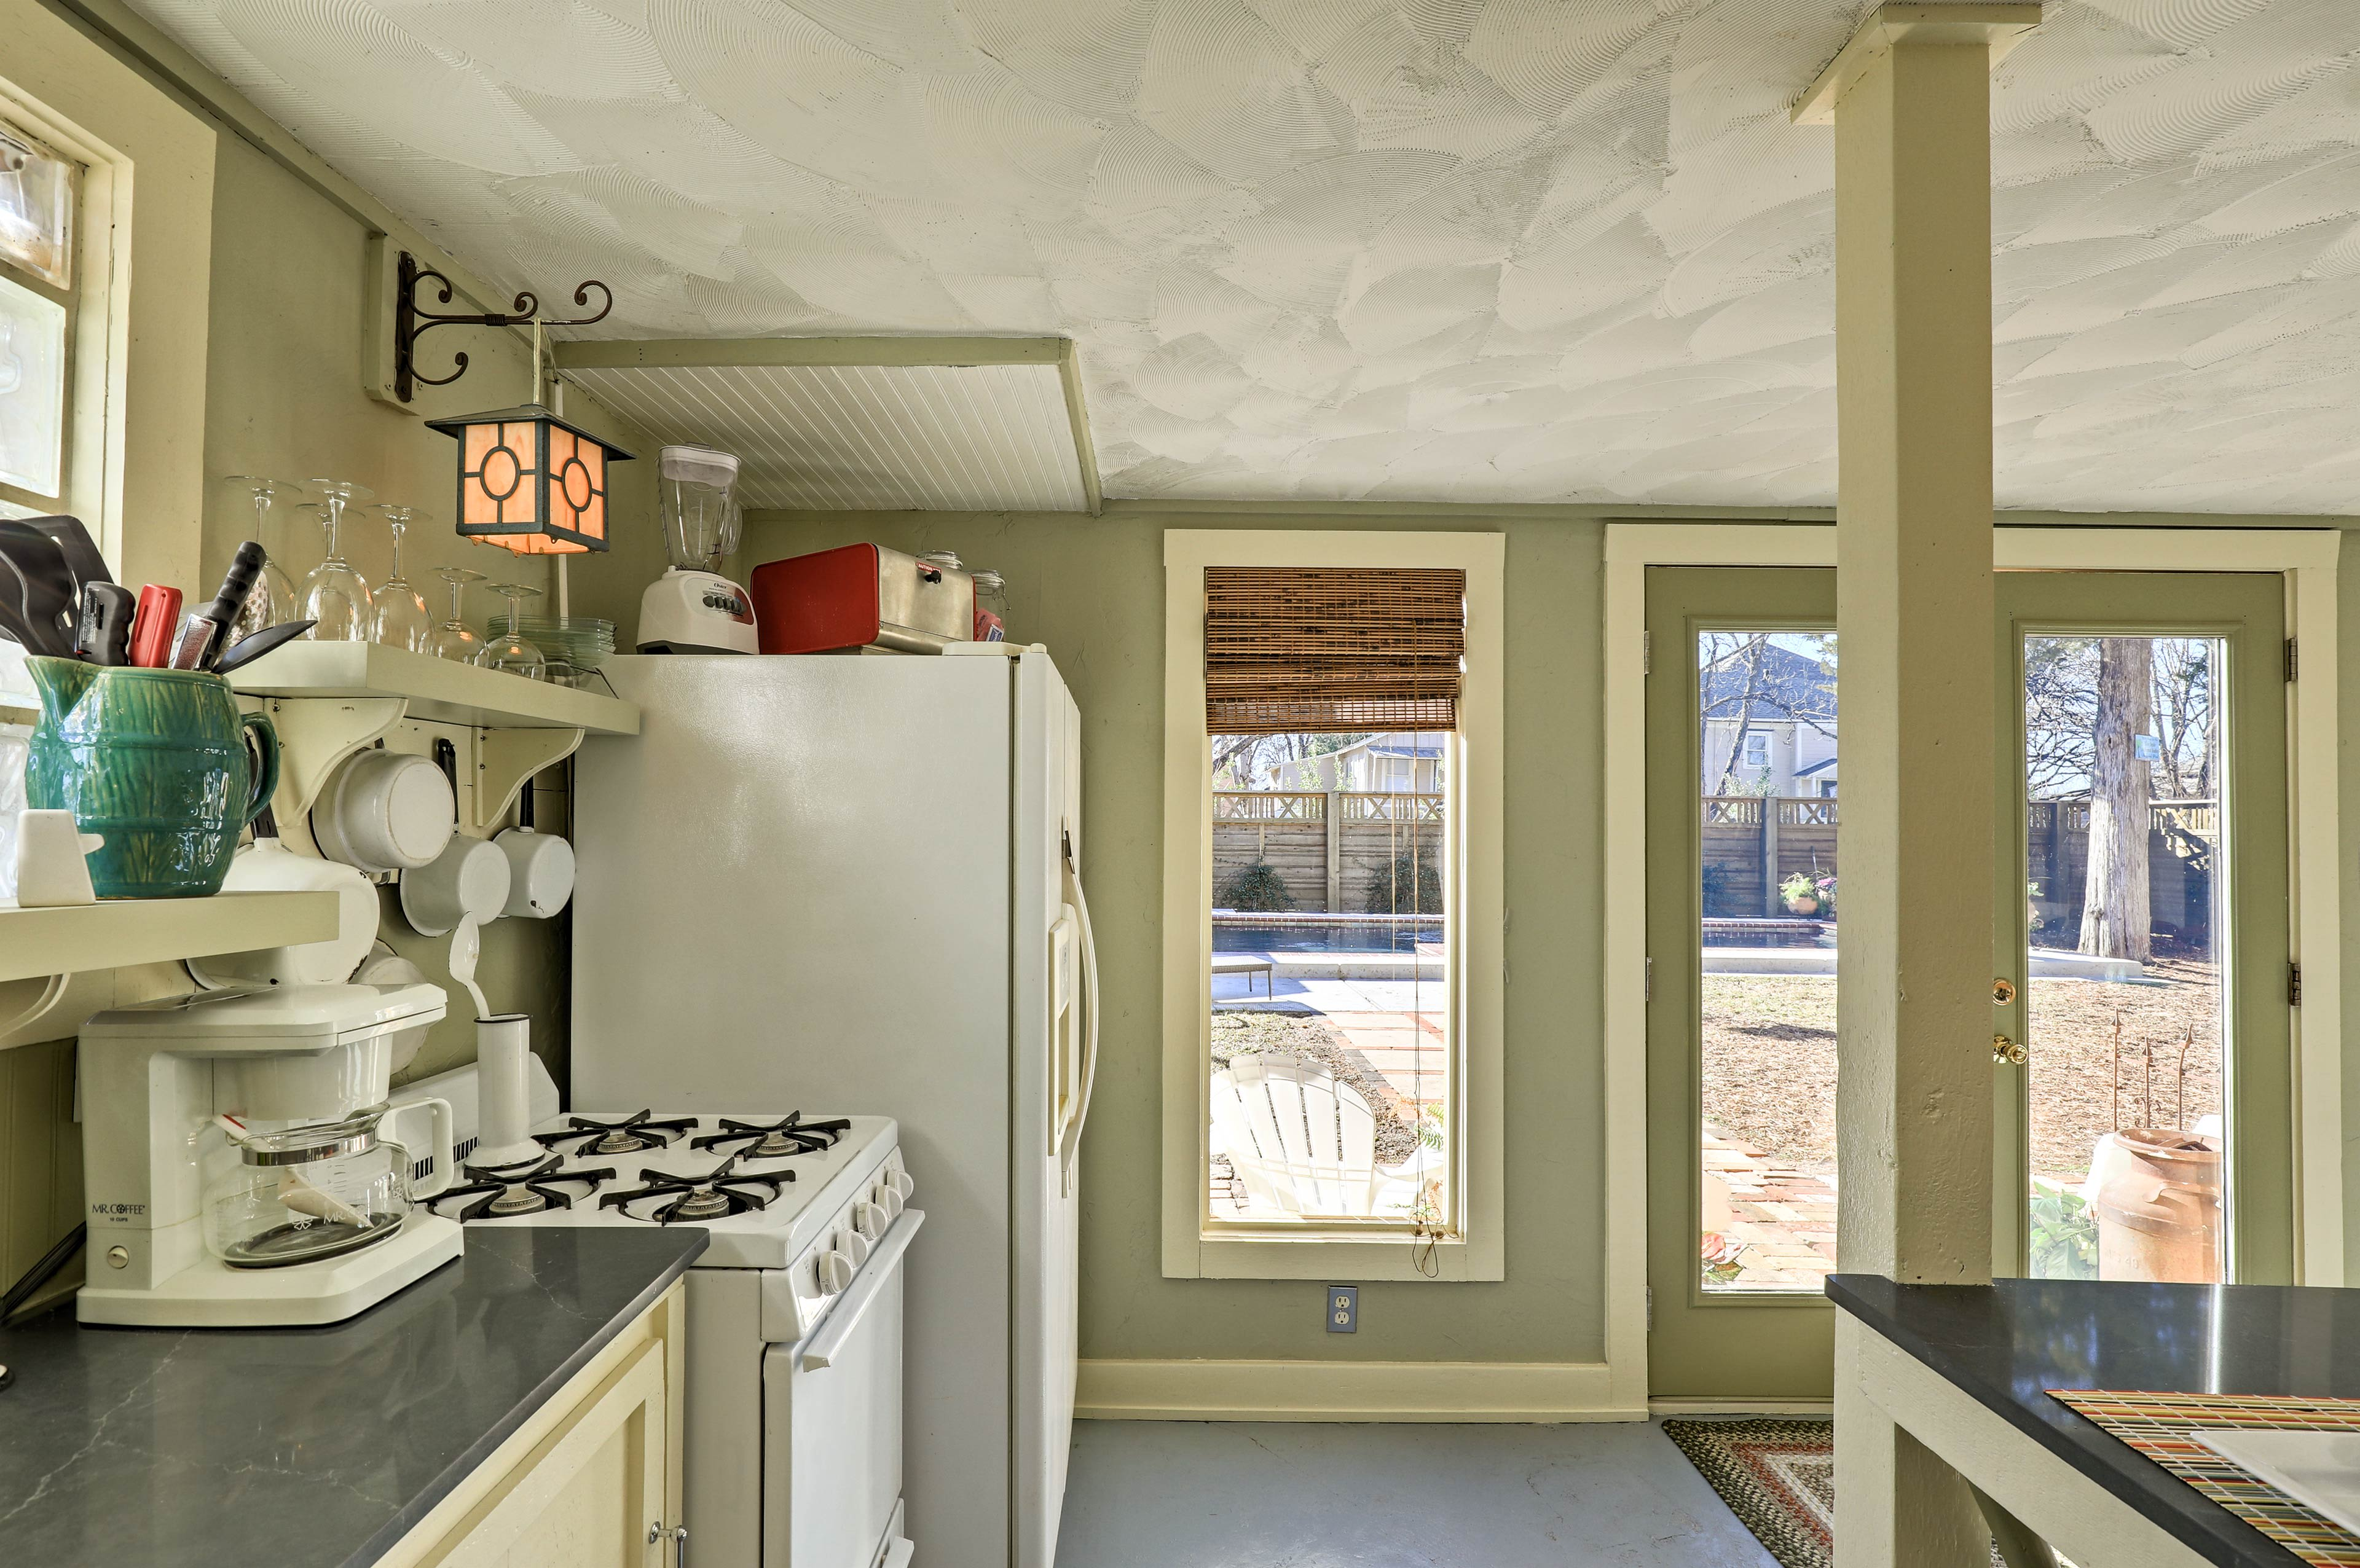 This quirky kitchen boasts open shelving.